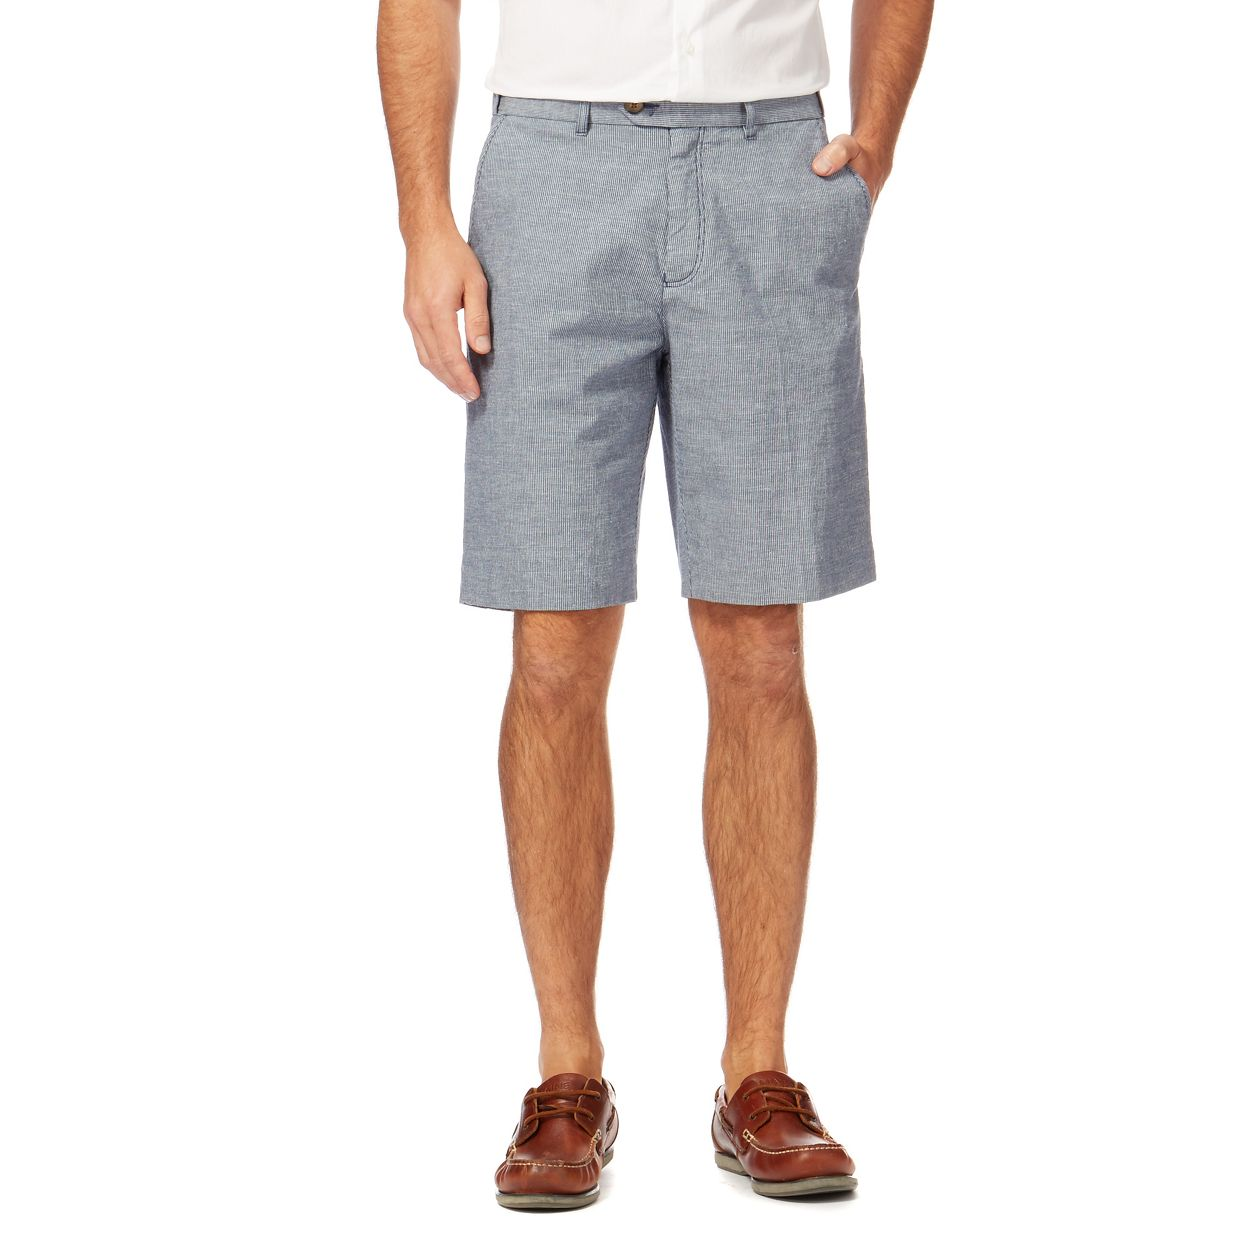 Maine New England Blue linen blend striped chino shorts